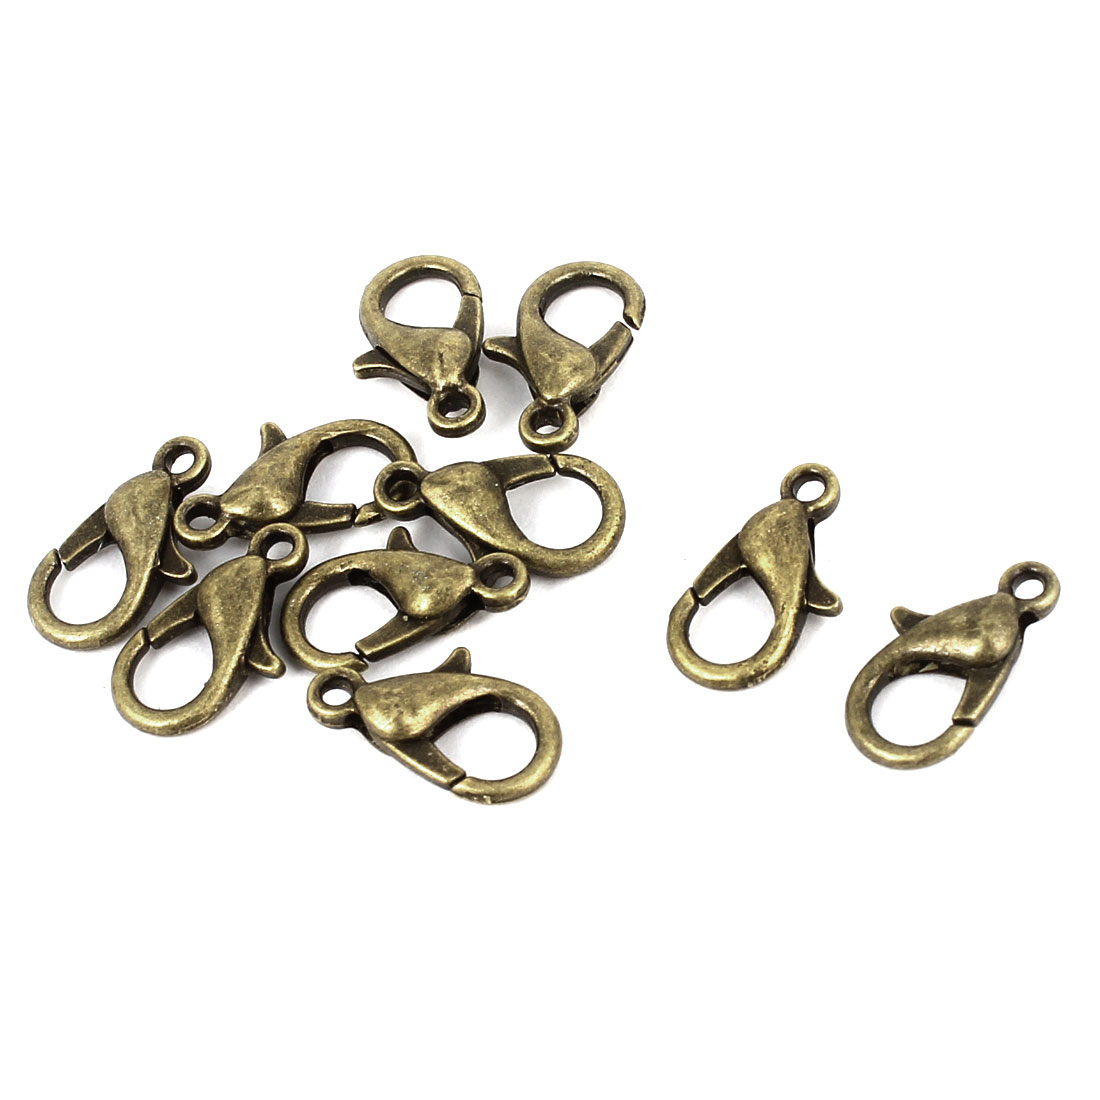 10 Pcs Bronze Tone 12mm Lobster Claw Clasps Buckles Necklace Fasteners